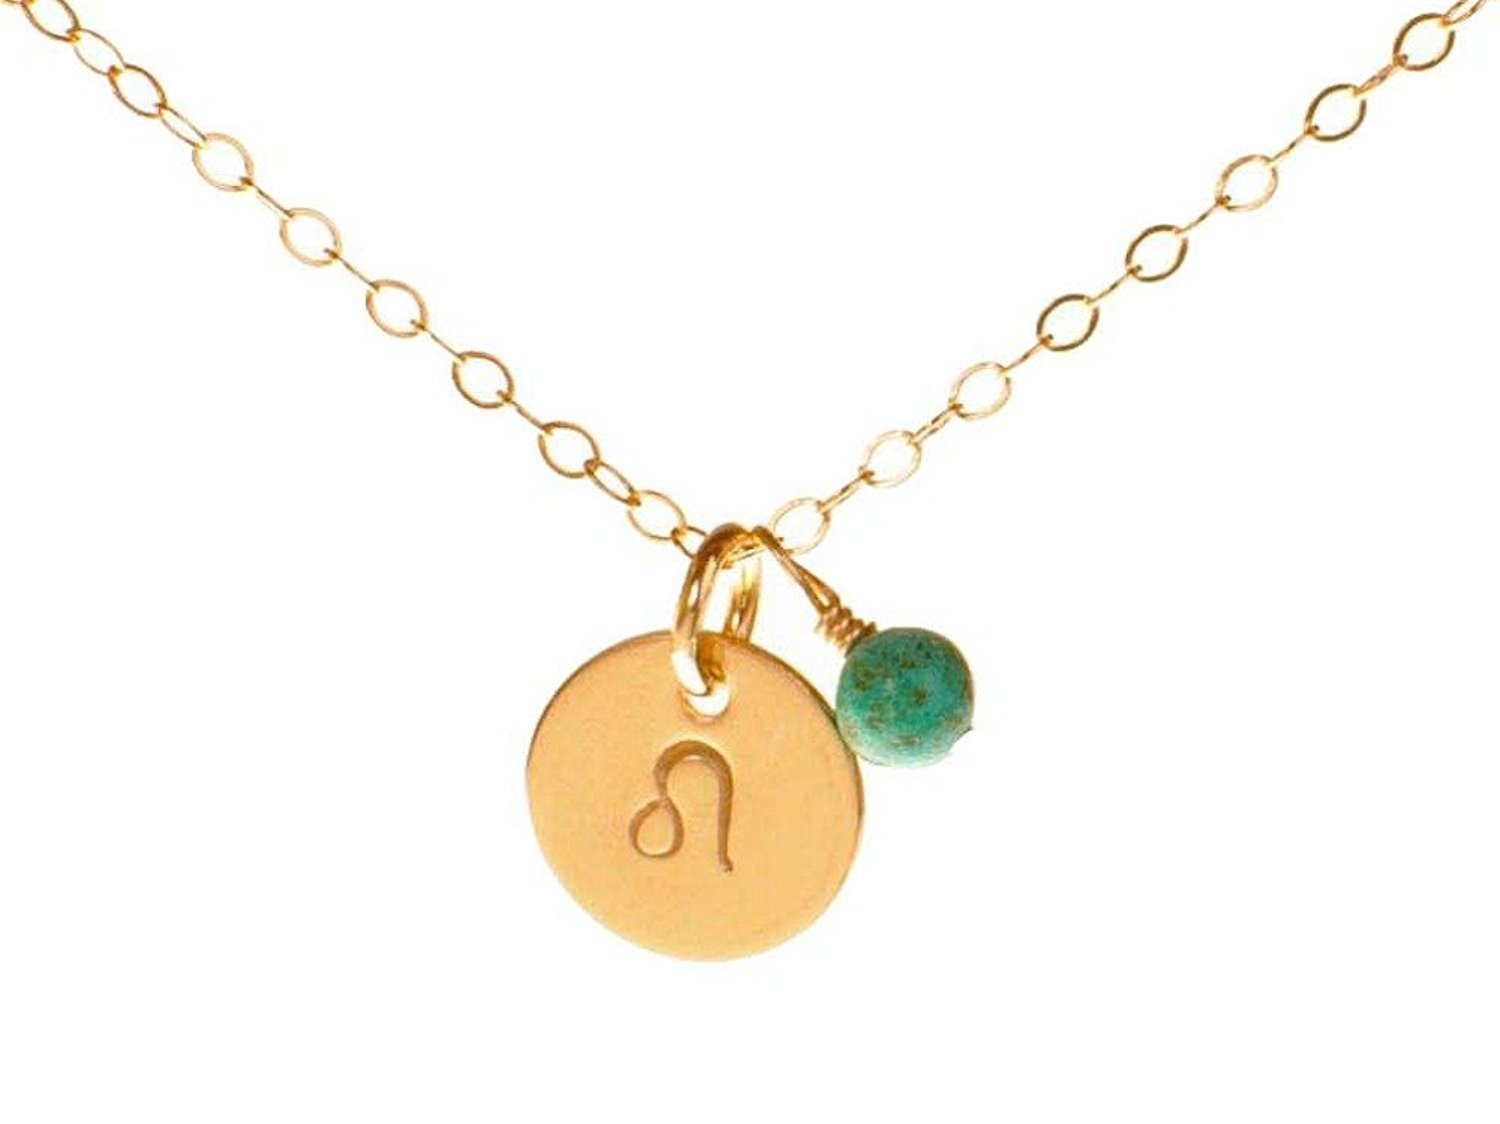 d289f9356cced5 Get Quotations · Leo Necklace - Tiny Gold Filled Simple Zodiac Sign with  Birth Month Charm, Zodiac Pendant